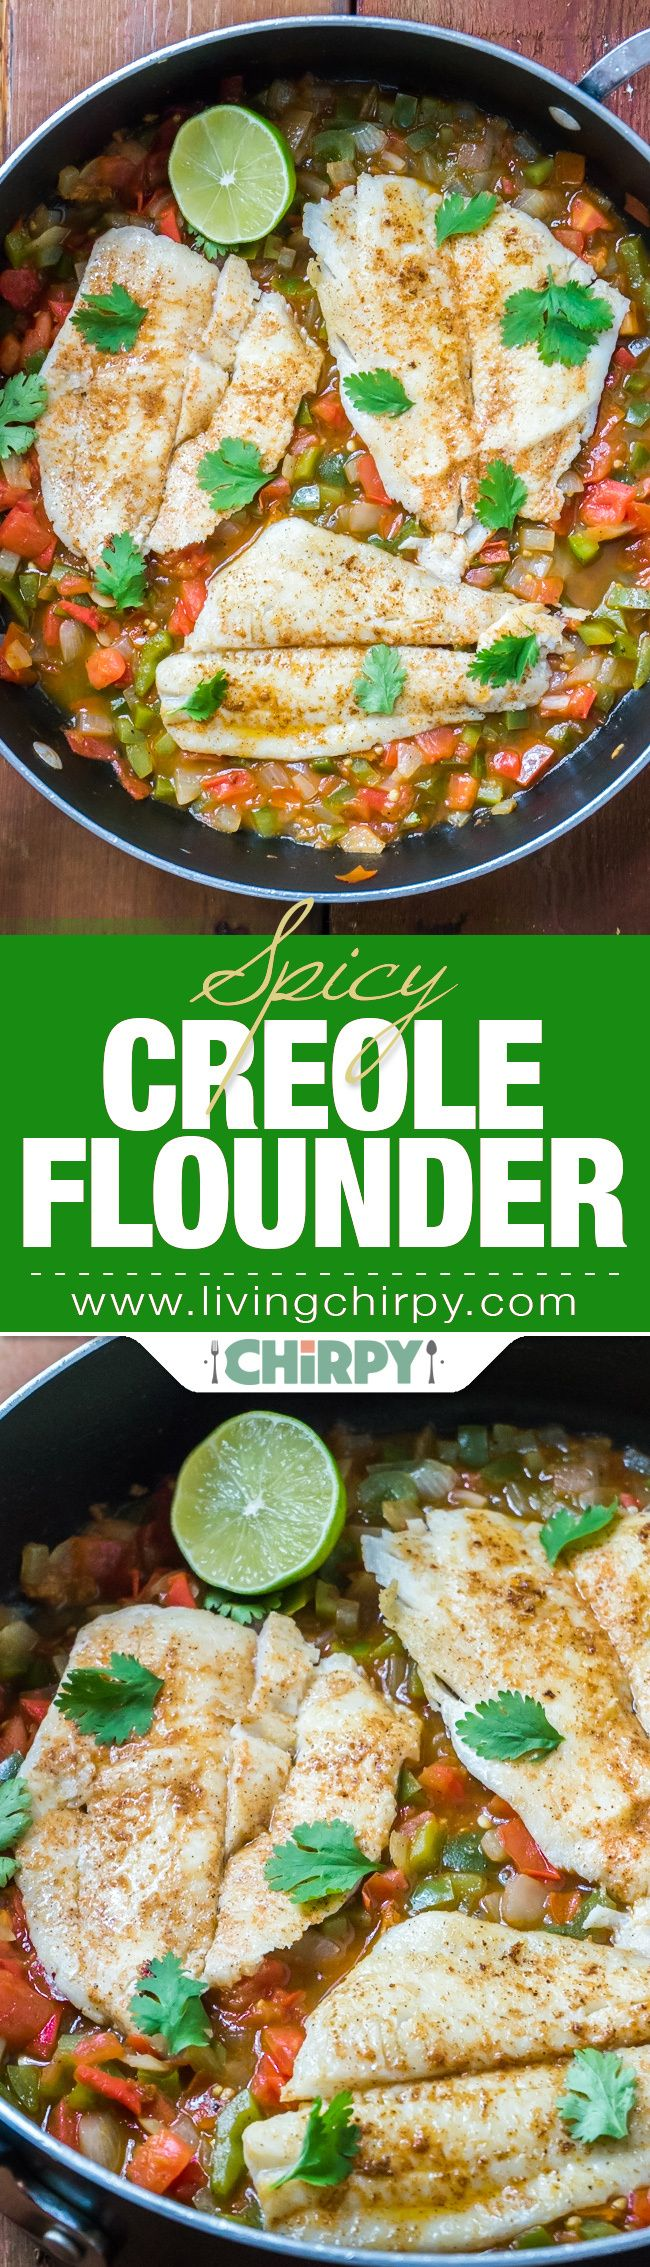 Spicy Creole Flounder, a quick, easy and tasteful way to prepare fish ...